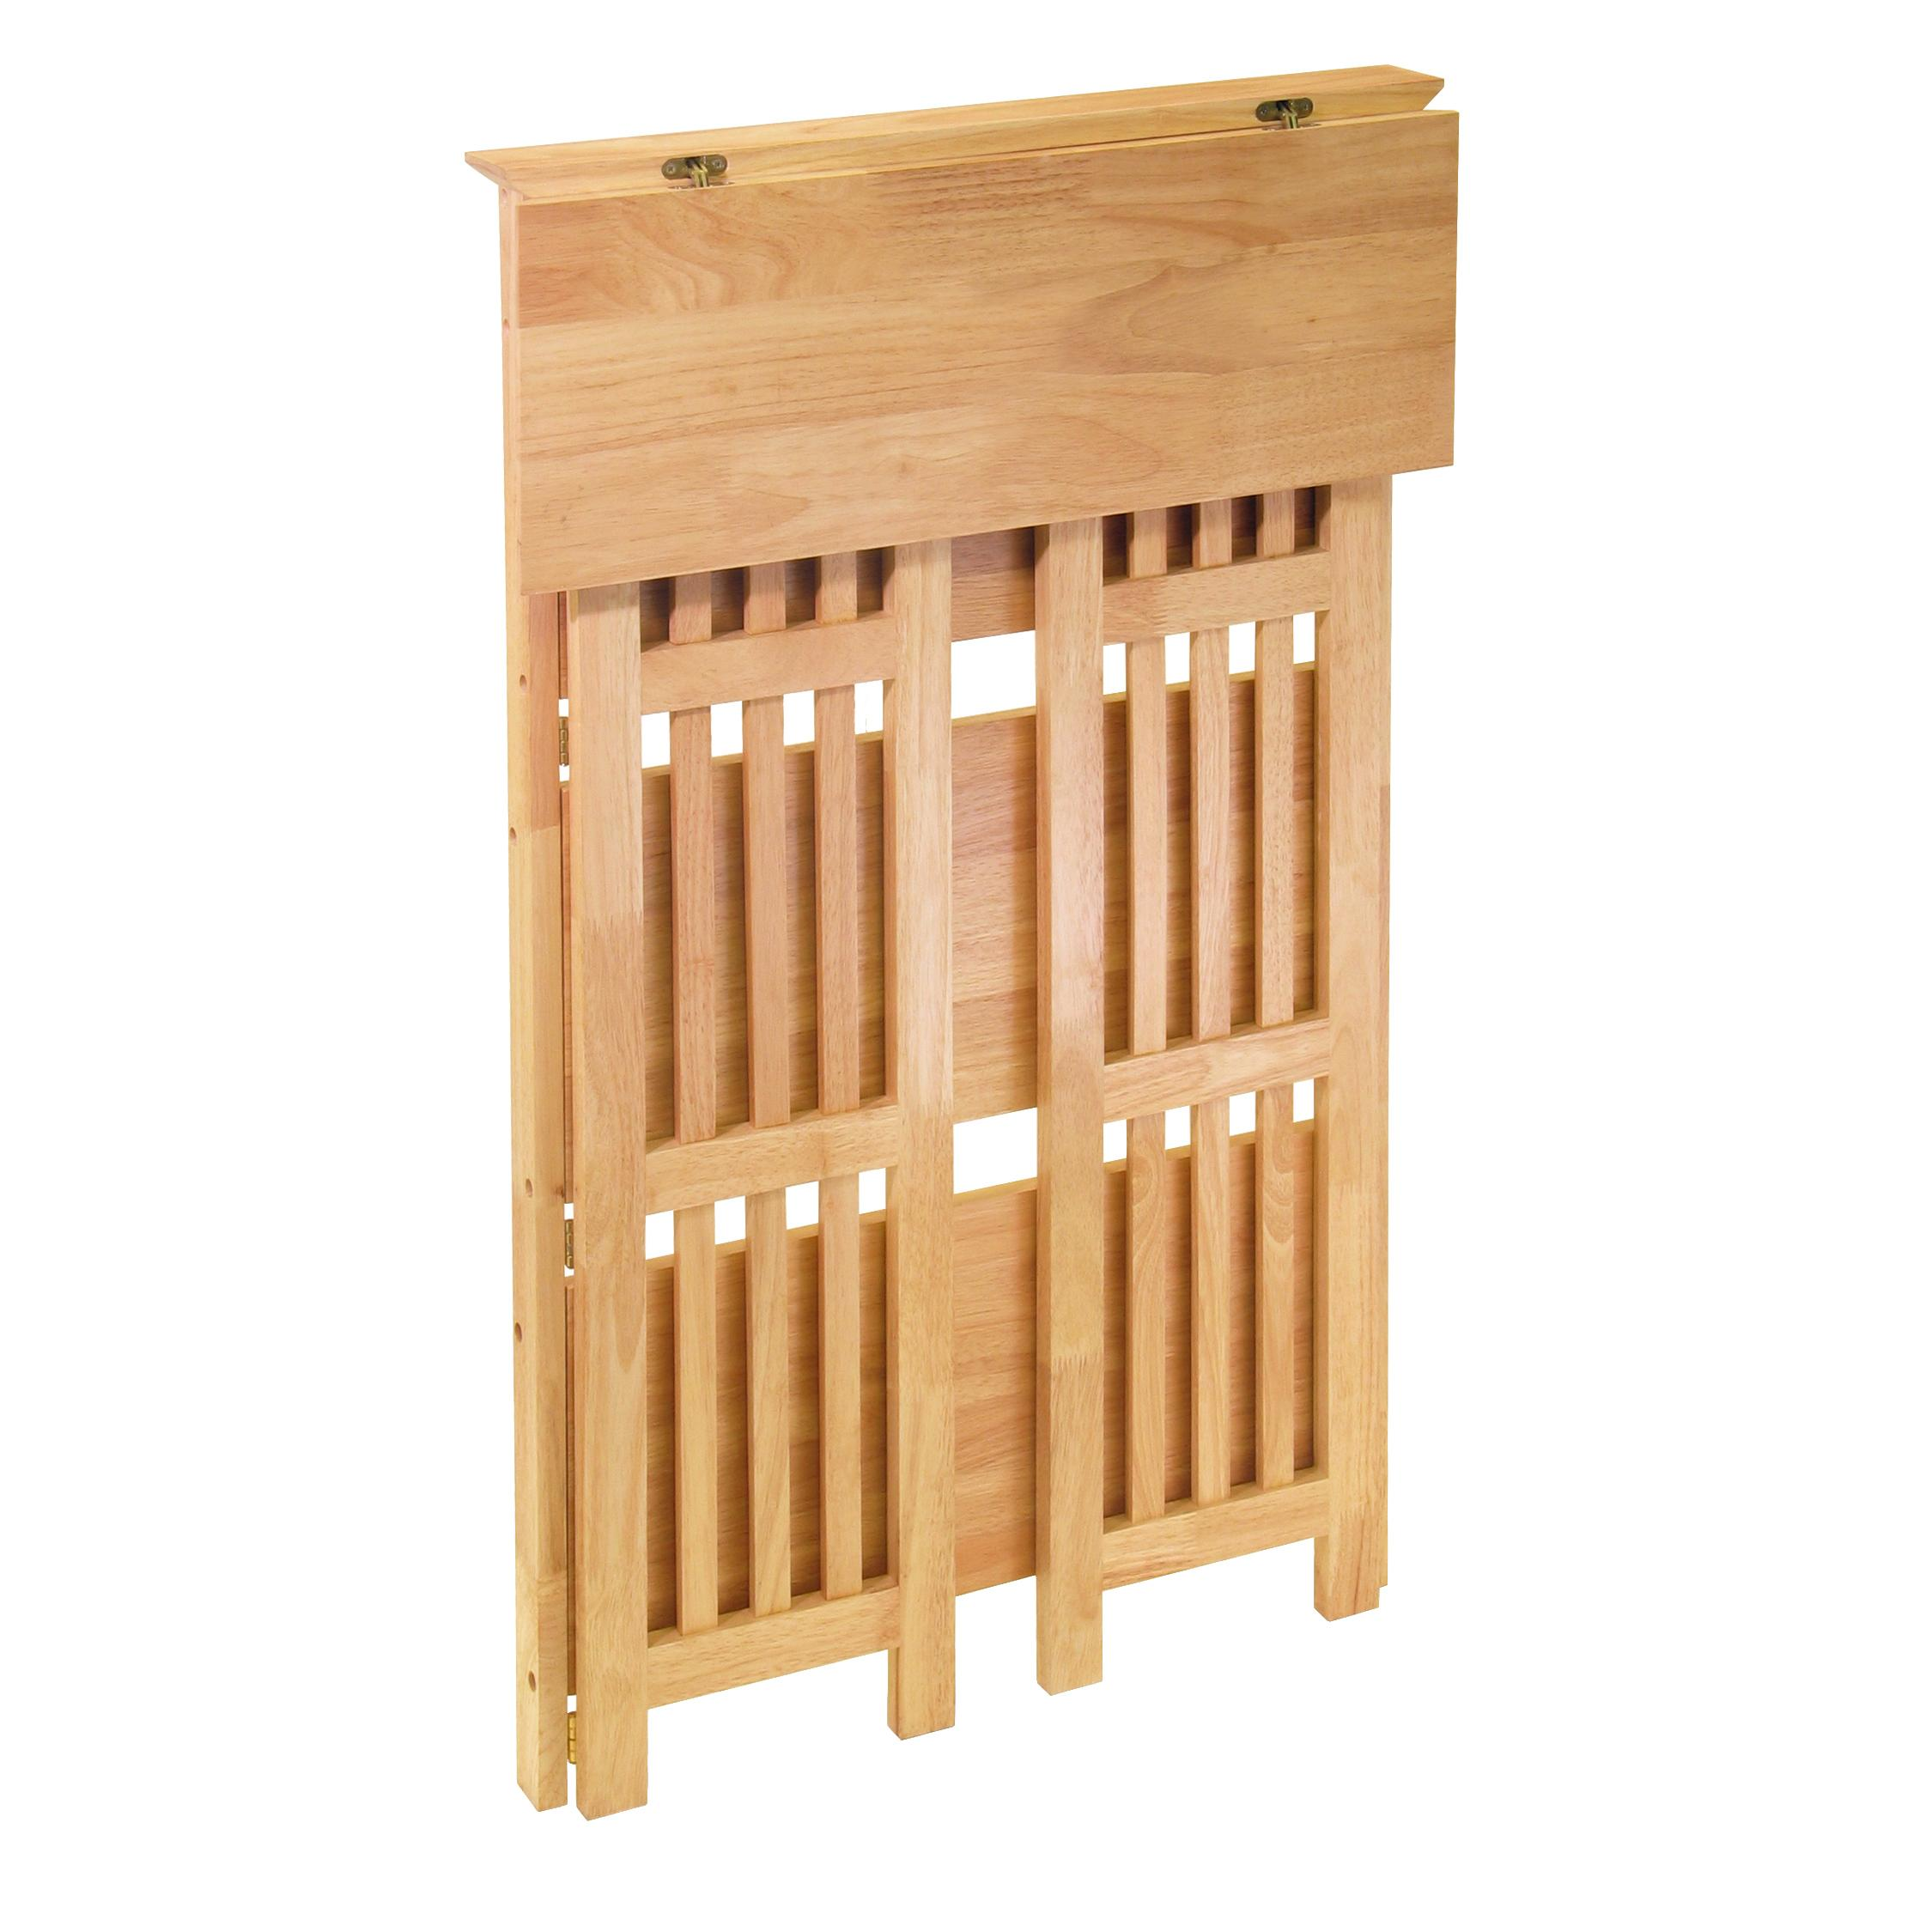 collapsible shelf for craft shows